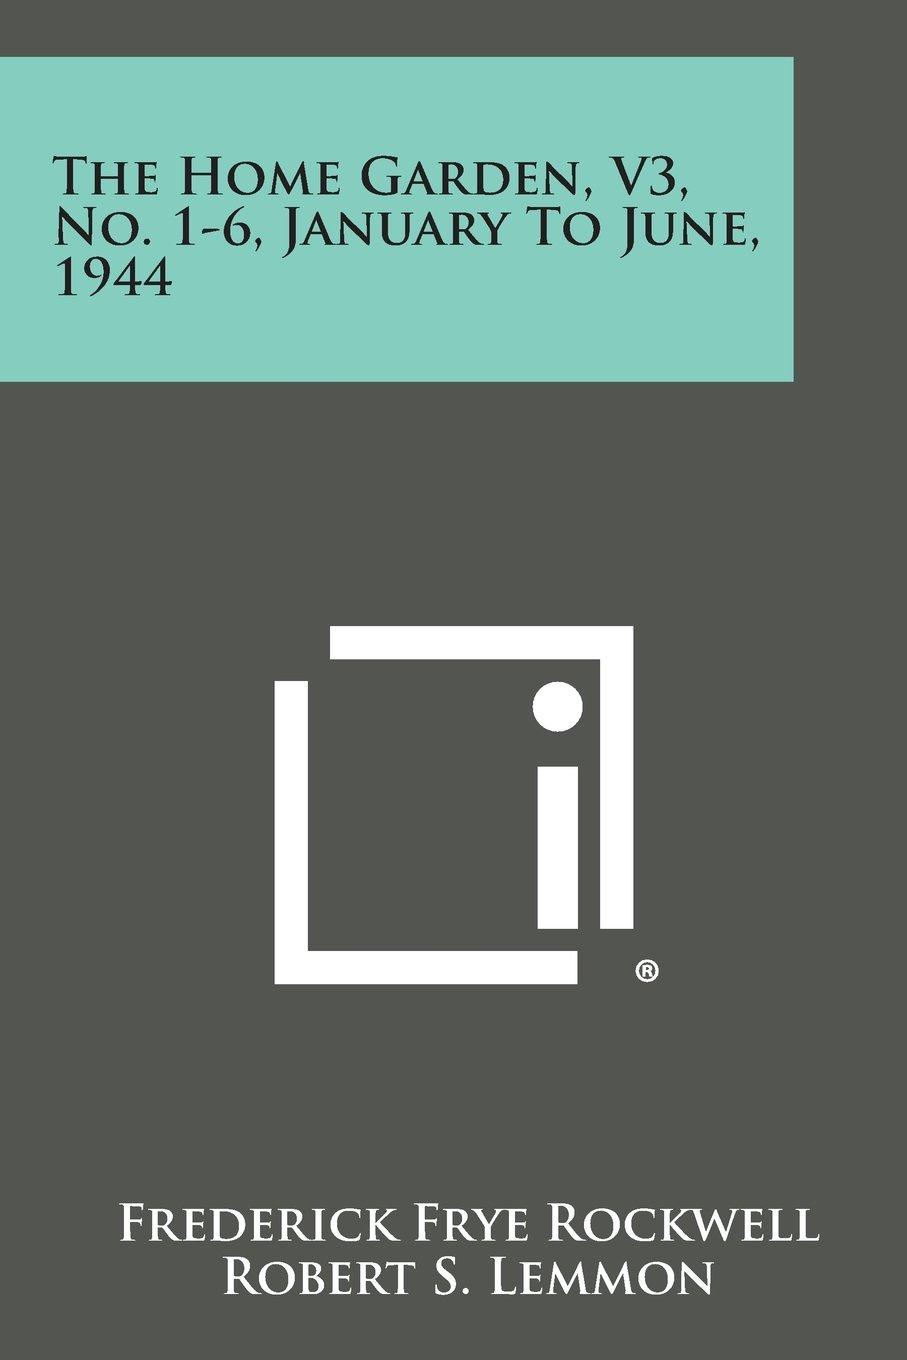 Download The Home Garden, V3, No. 1-6, January to June, 1944 PDF